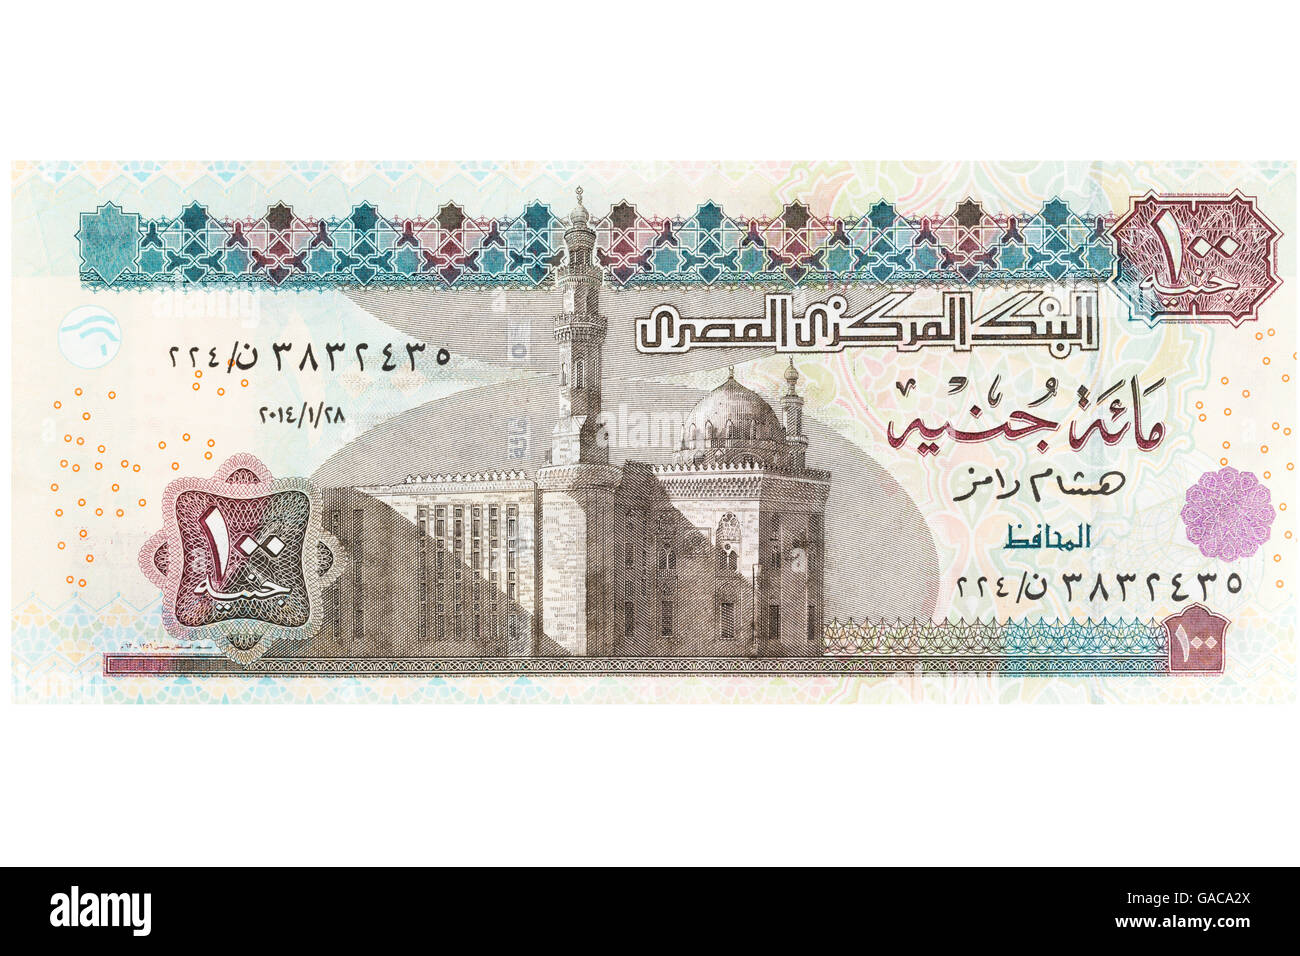 Egyptian one hundred pound banknote on a white background - Stock Image